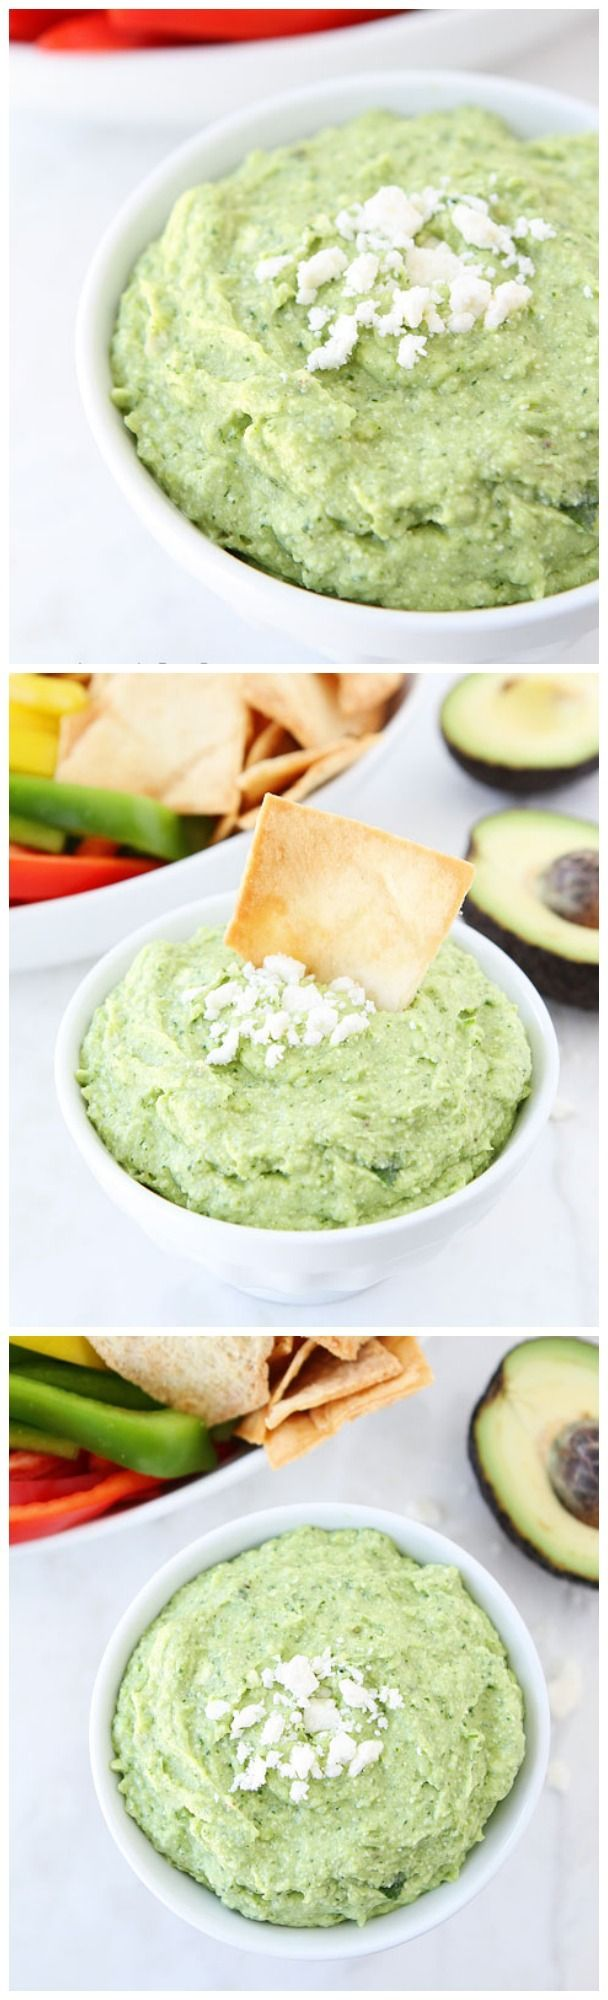 Avocado Feta Dip Recipe - sounds yummy